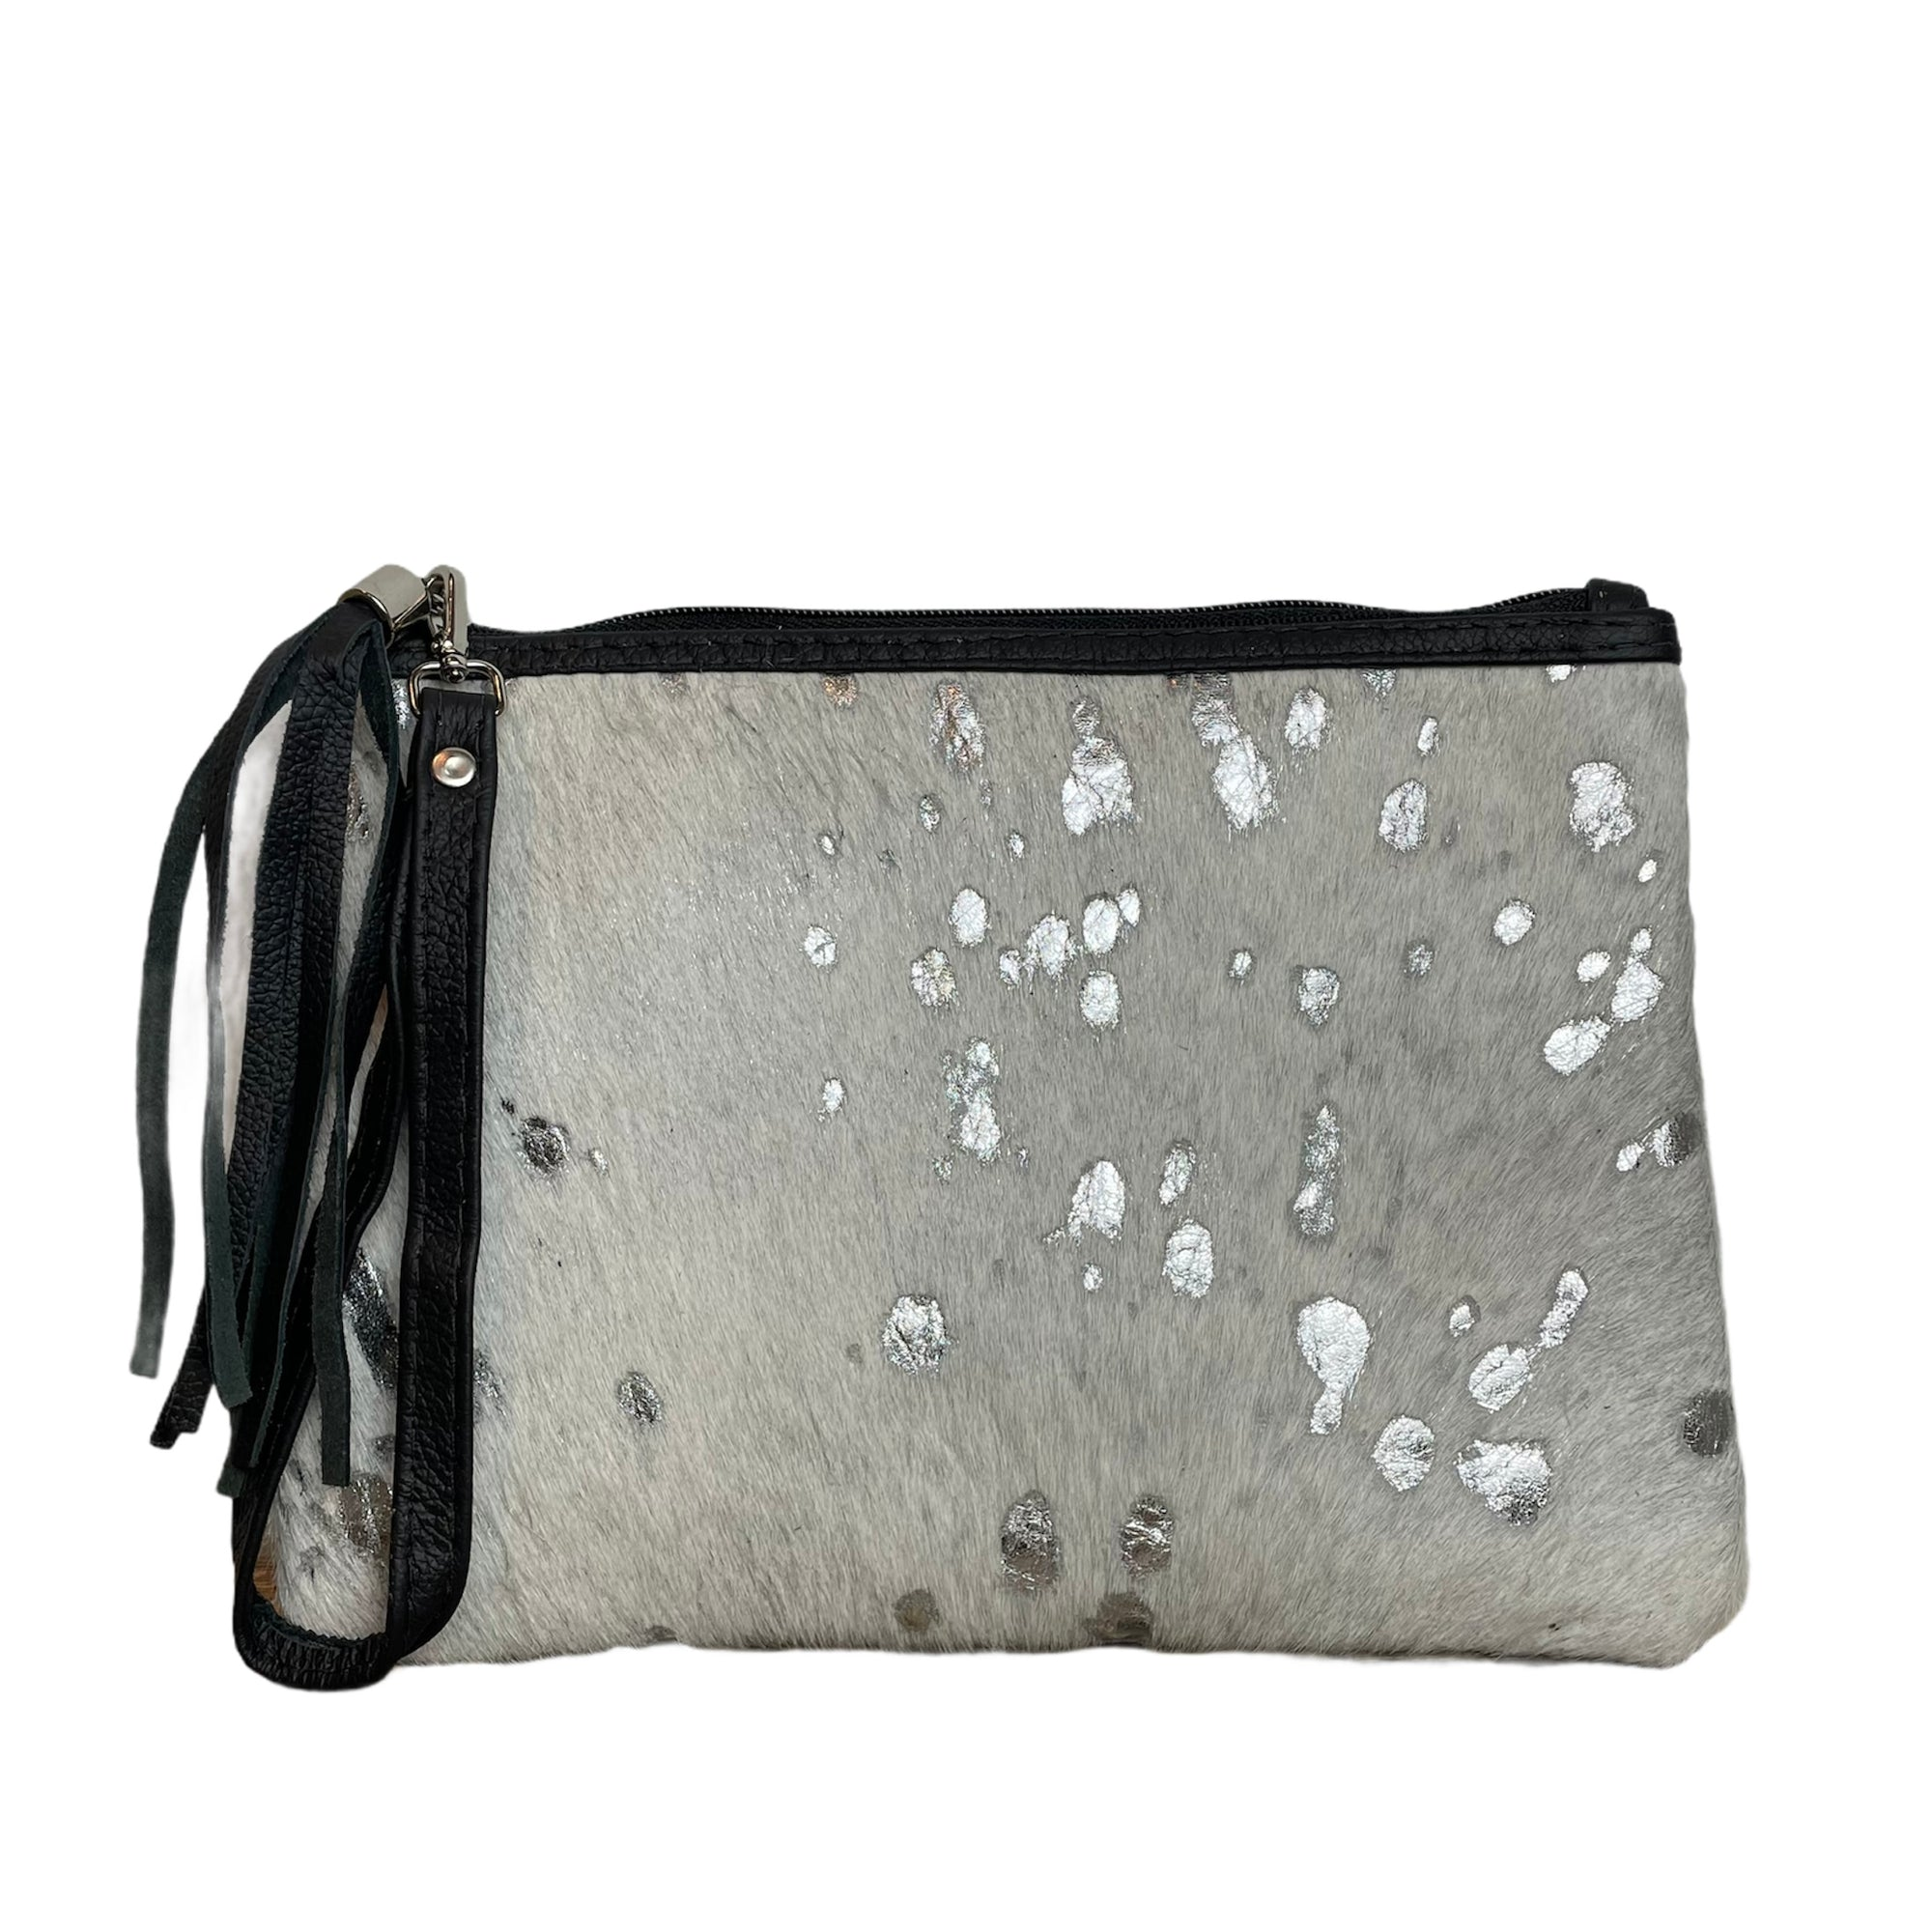 COWHIDE EVERYDAY SMALL CLUTCH - WHITE METALLIC SILVER. Izel Designs